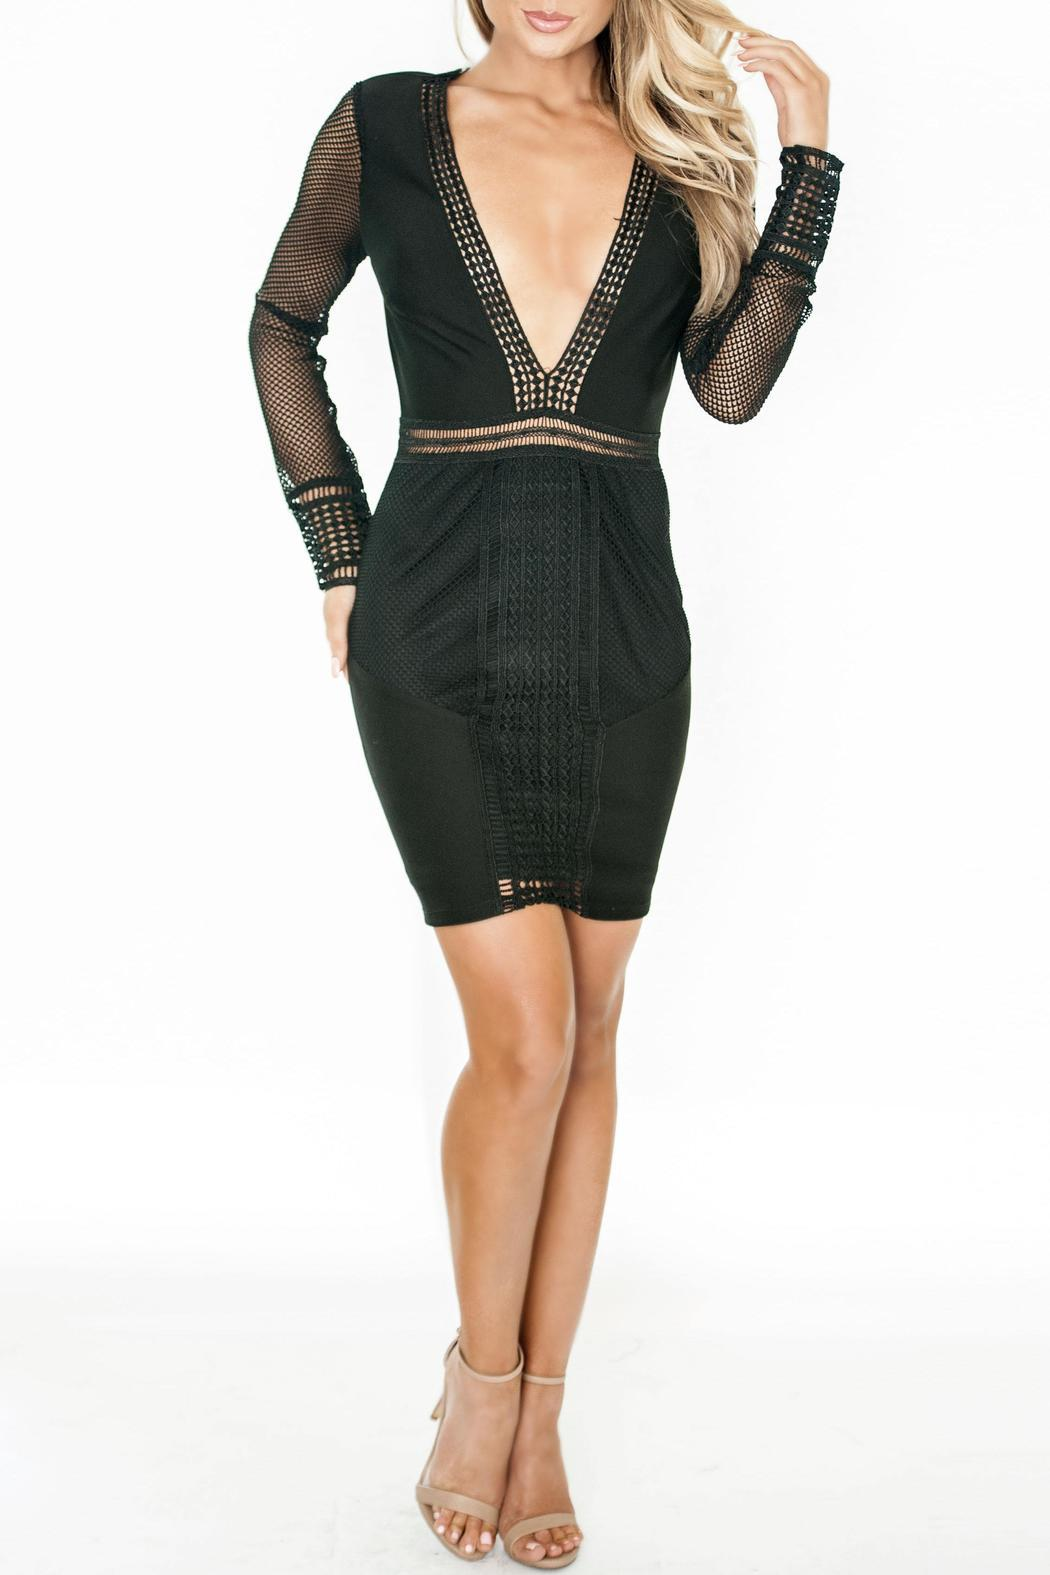 Chynna Dolls Keira Bodycon Minidress - Front Cropped Image